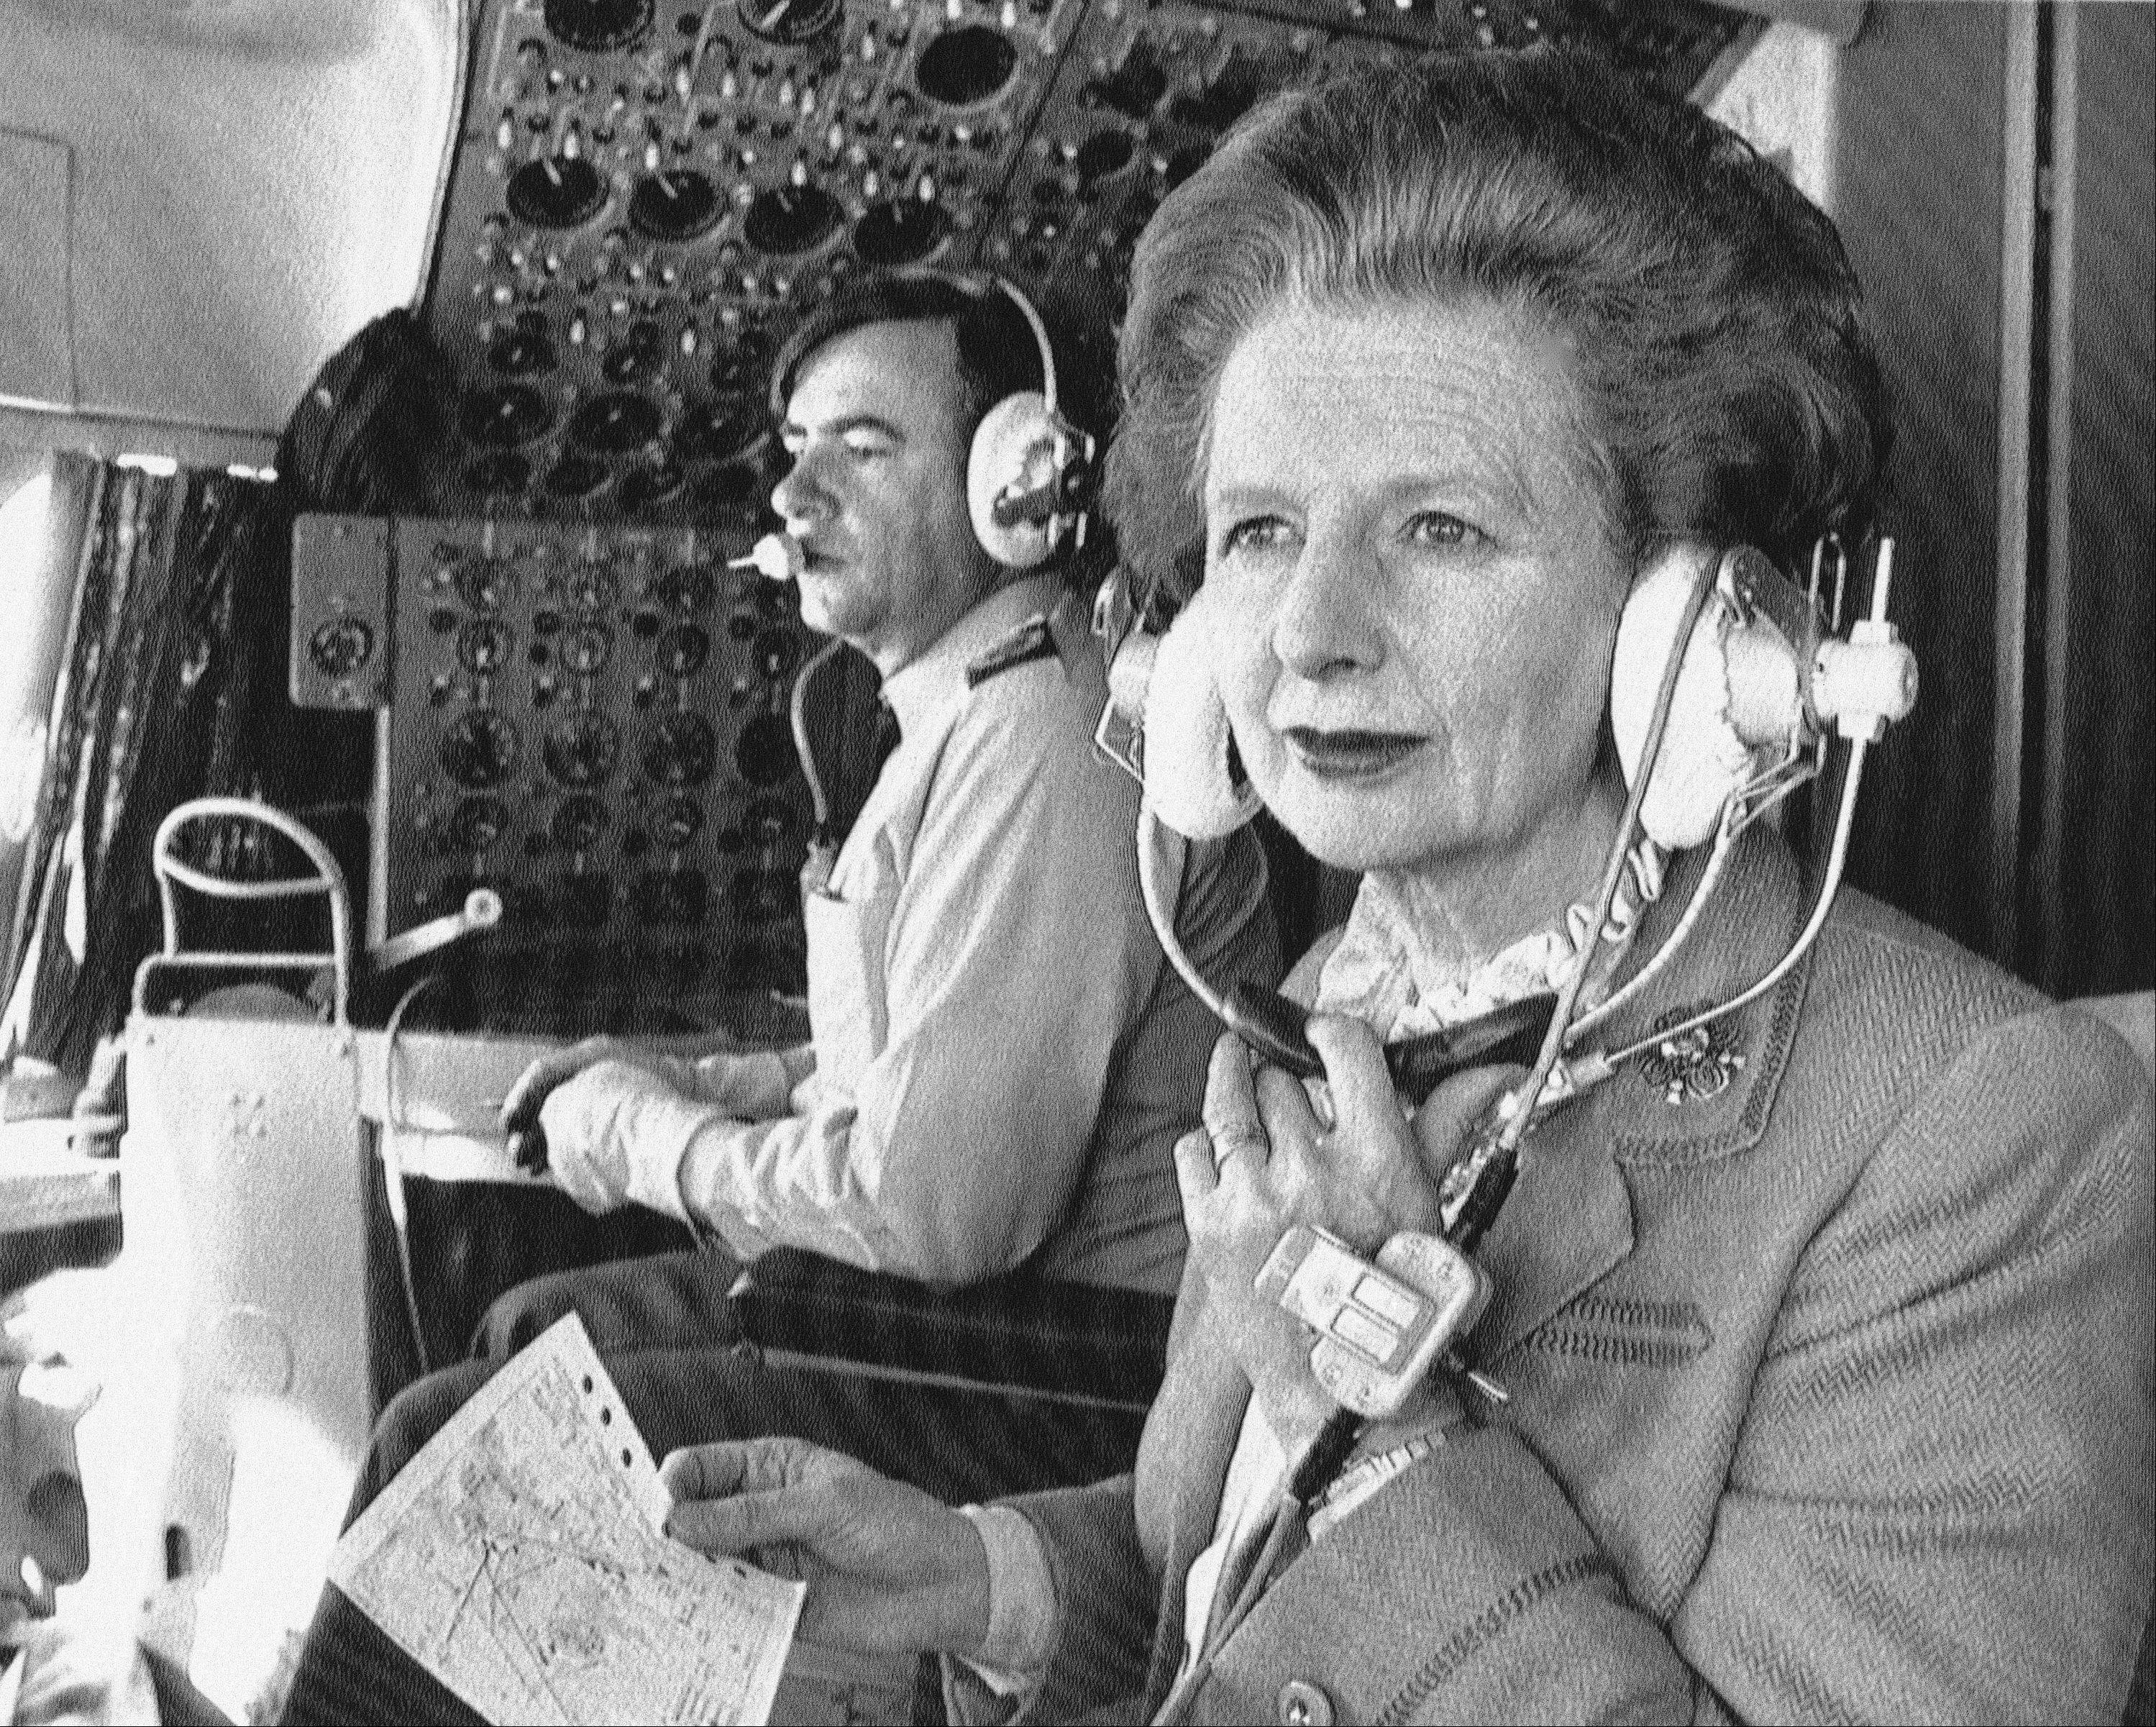 In a Thursday, Dec. 20, 1984 file photo, British Prime Minister Margaret Thatcher sits in the cockpit in her Royal Air Force ve-10 during the flight to Hong Kong from Peking. Thatchers former spokesman, Tim Bell, said that the former British Prime Minister Margaret Thatcher died Monday morning, April 8, 2013, of a stroke. She was 87.